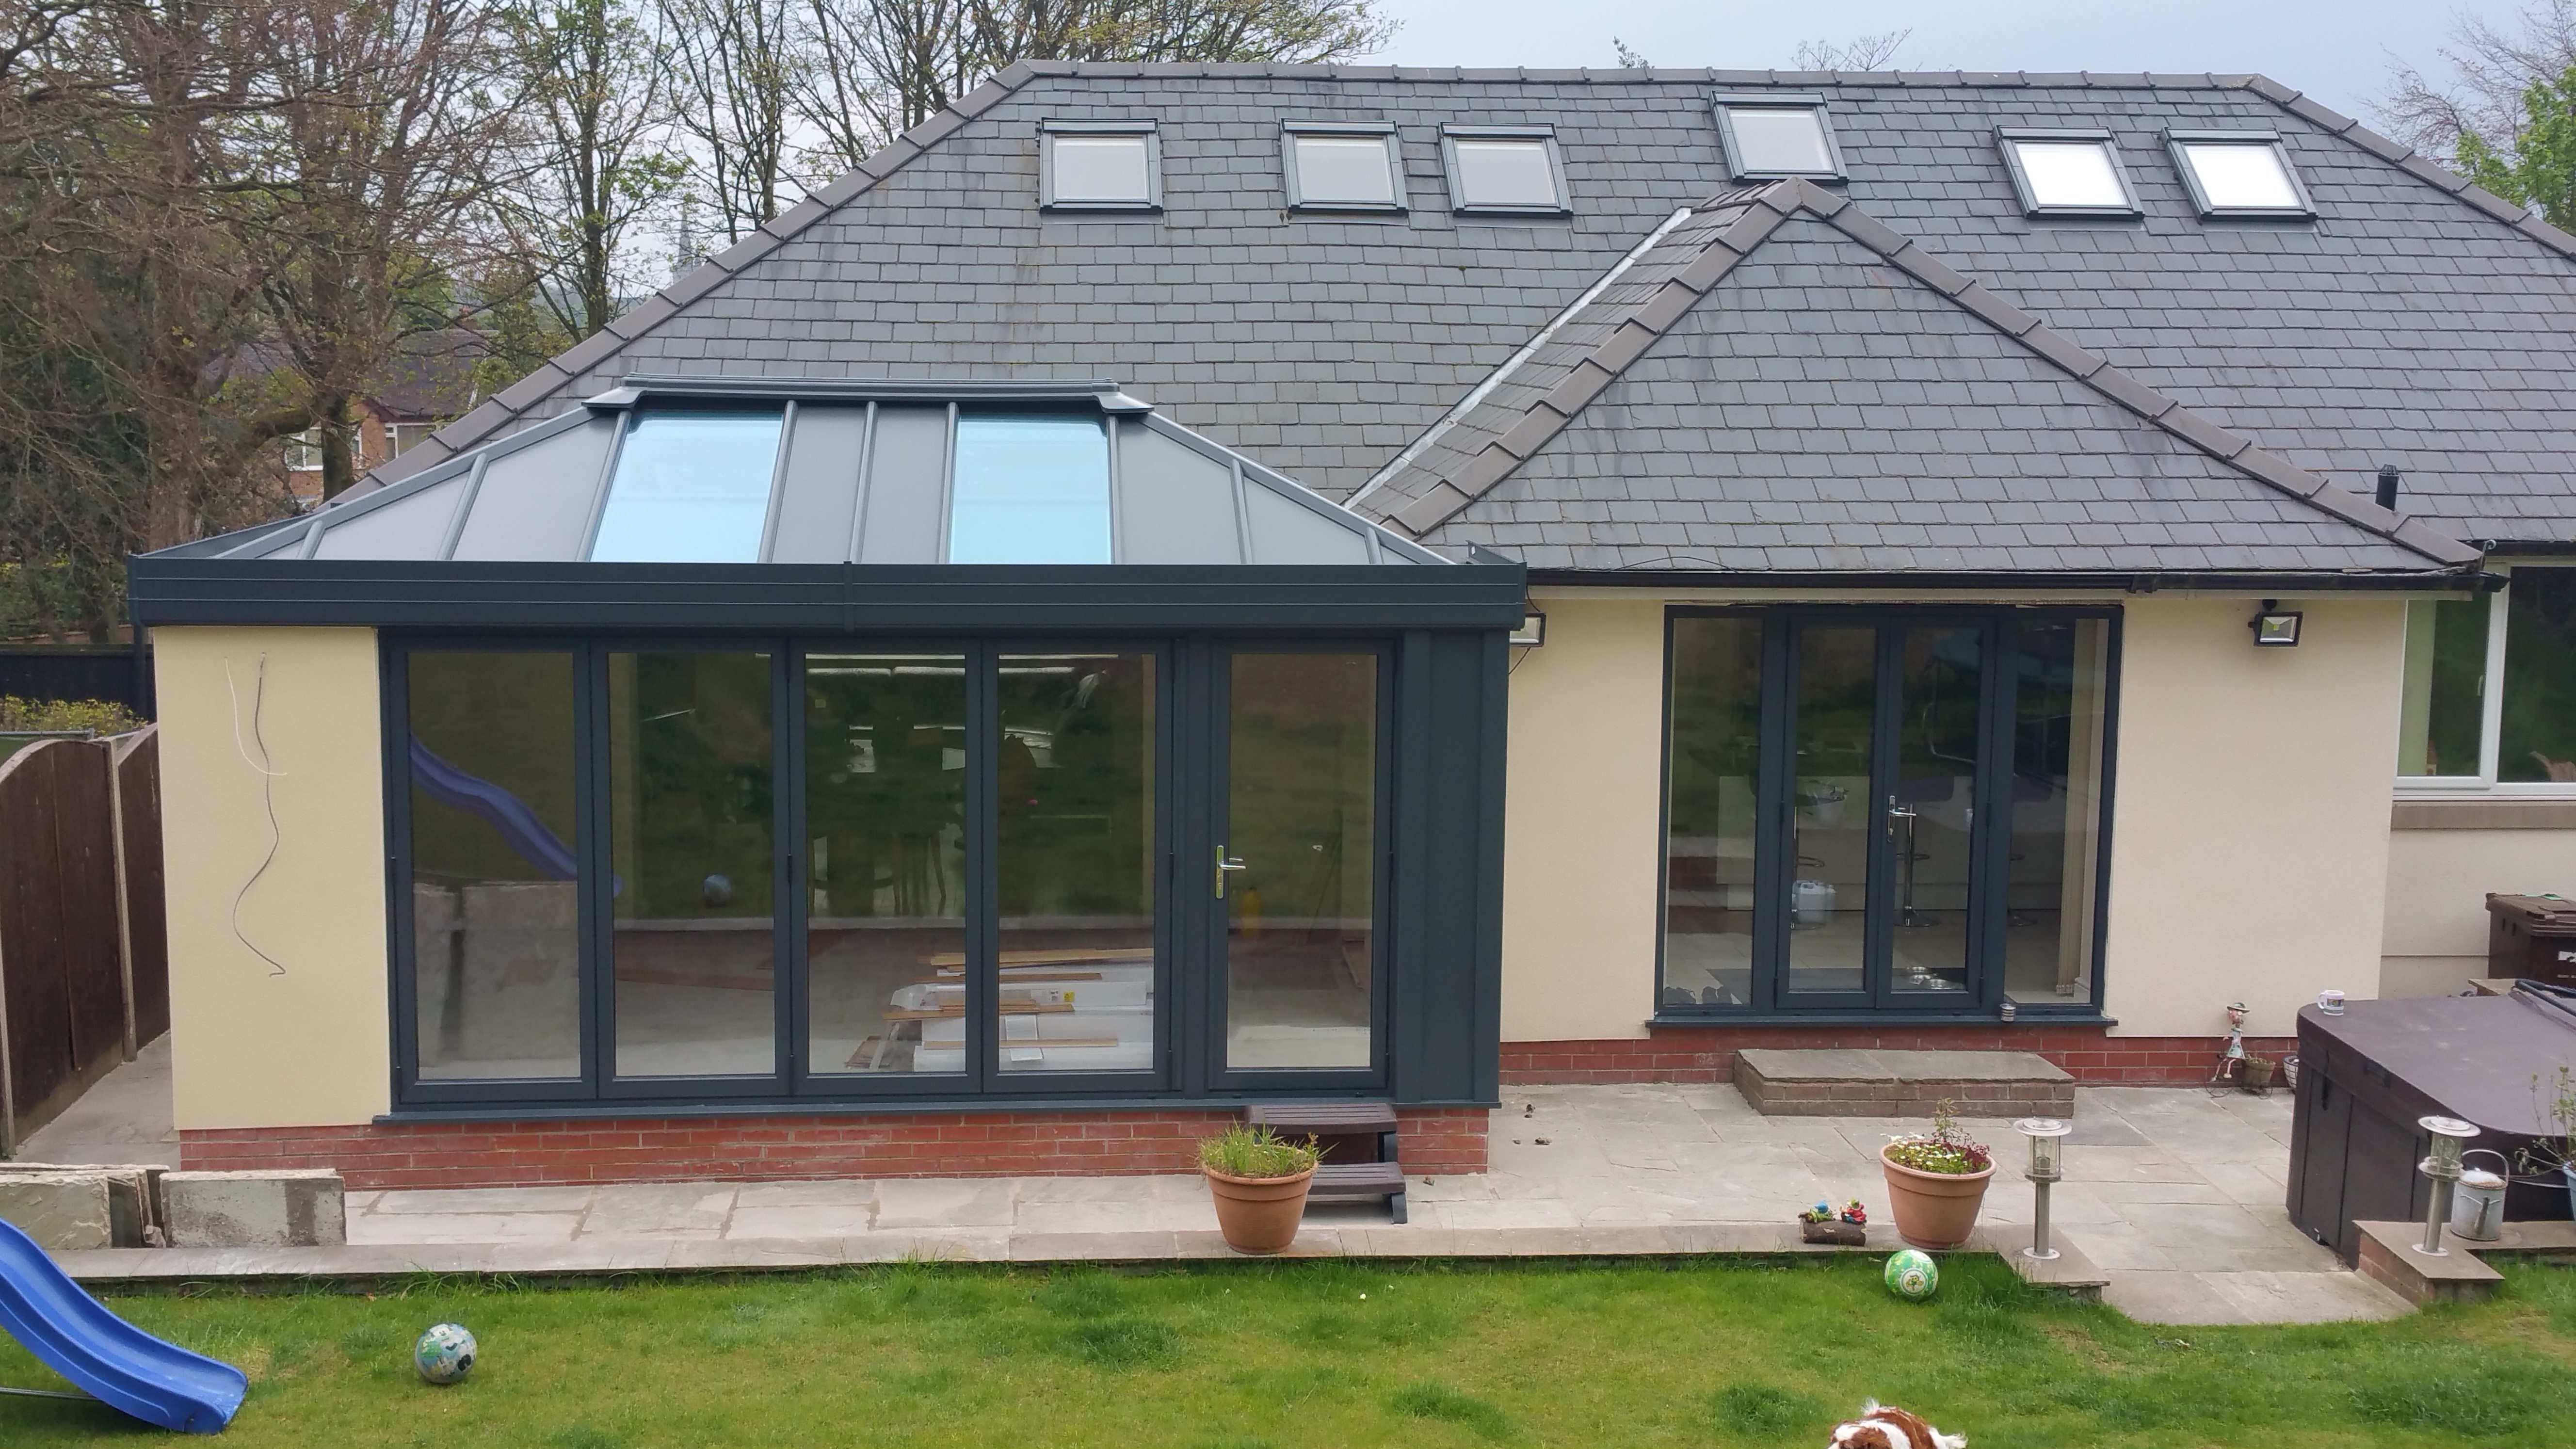 Glass Roof Extension Conservatory Gallery Home Extension Ideas In Manchester Bellavista